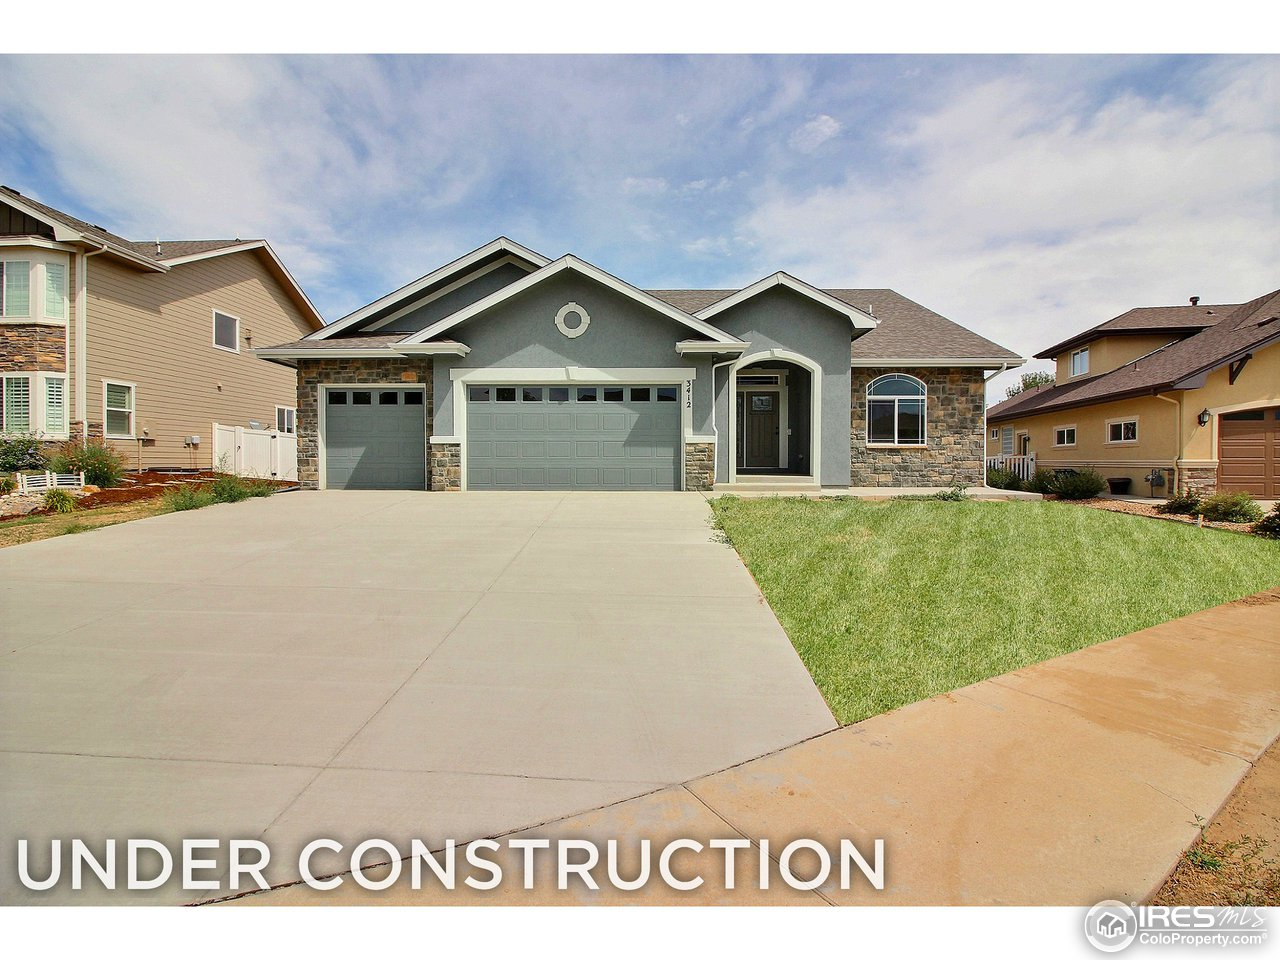 3404 66TH AVE, GREELEY, CO 80634